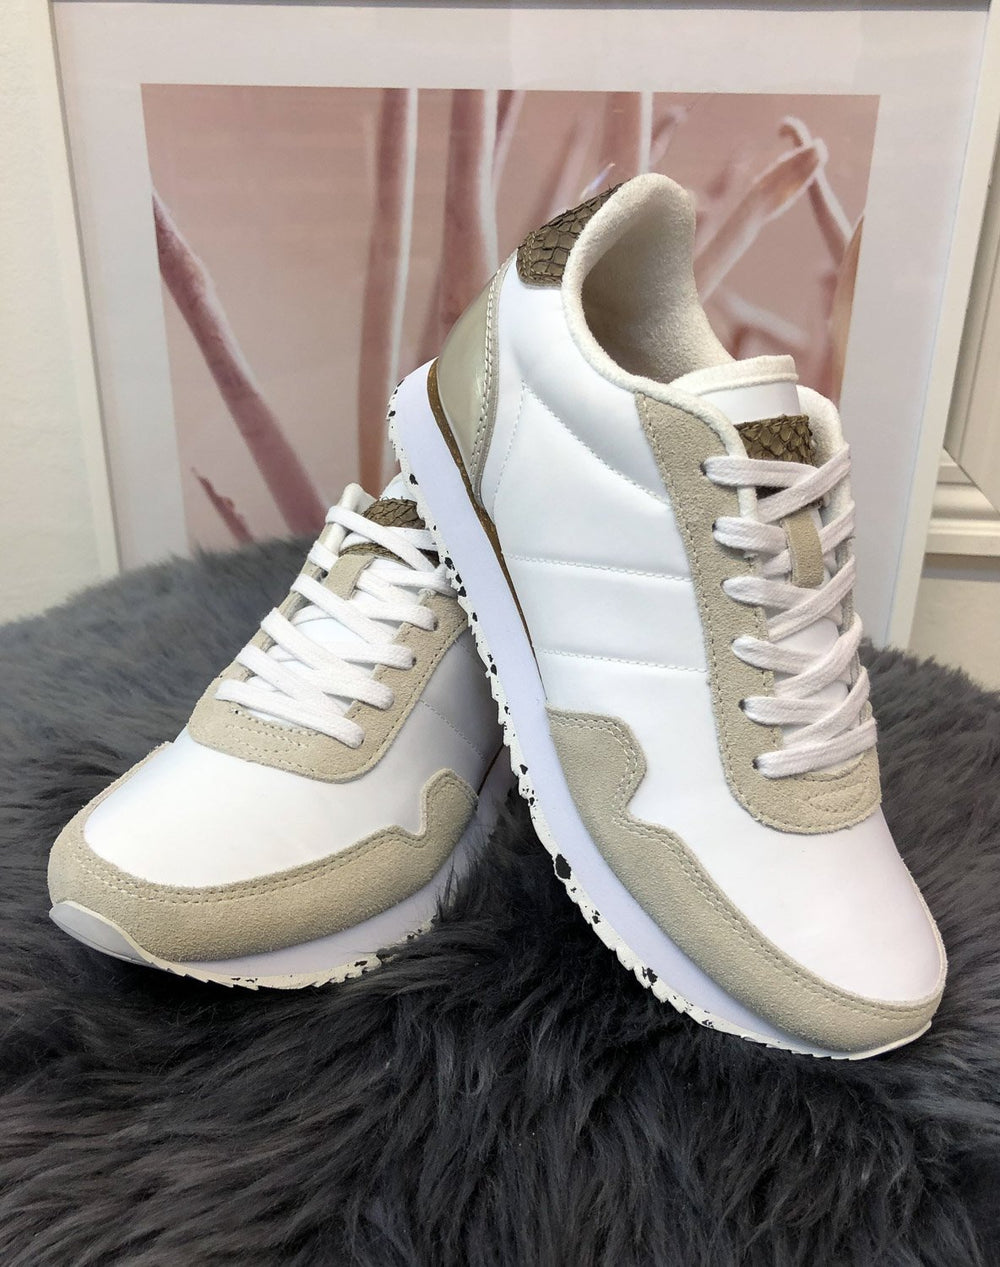 Woden Nora III sneakers bright white - Online-Mode